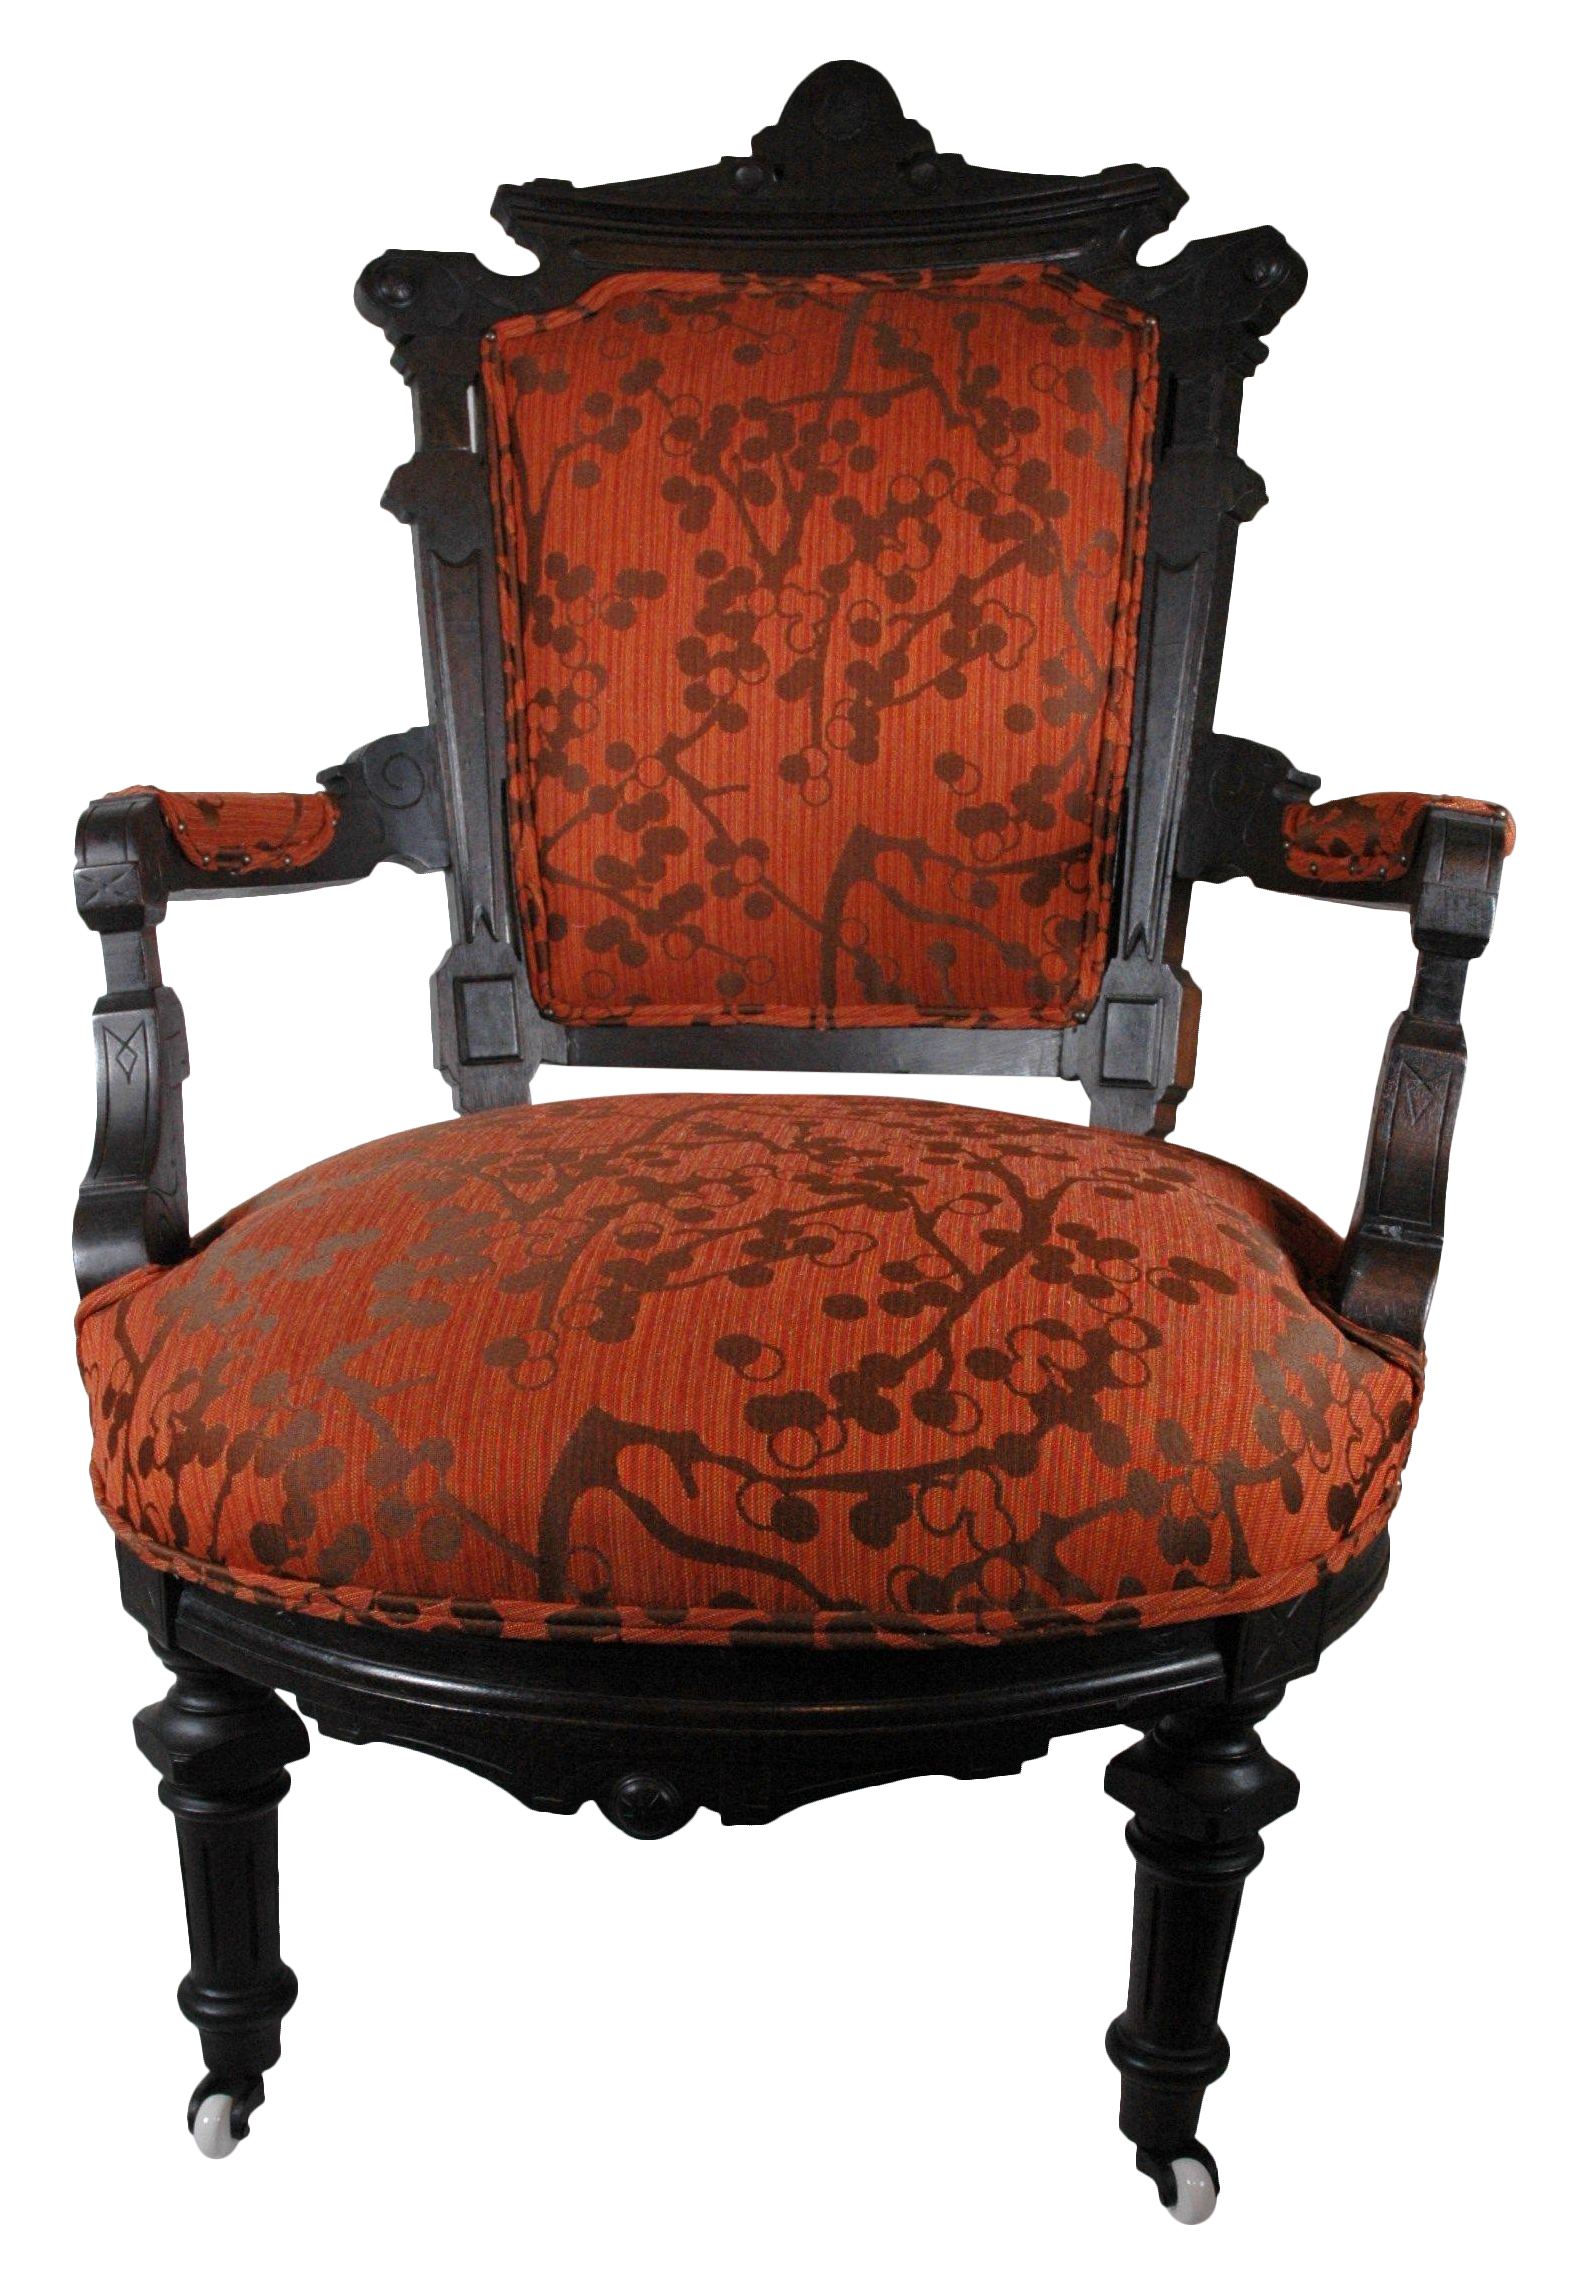 1890s Eastlake Chair Porcelain Farm house and Antique  : 5e990a6d1d4f2efa7c9bd6d2a7284e3d from www.pinterest.com size 1588 x 2286 png 3475kB